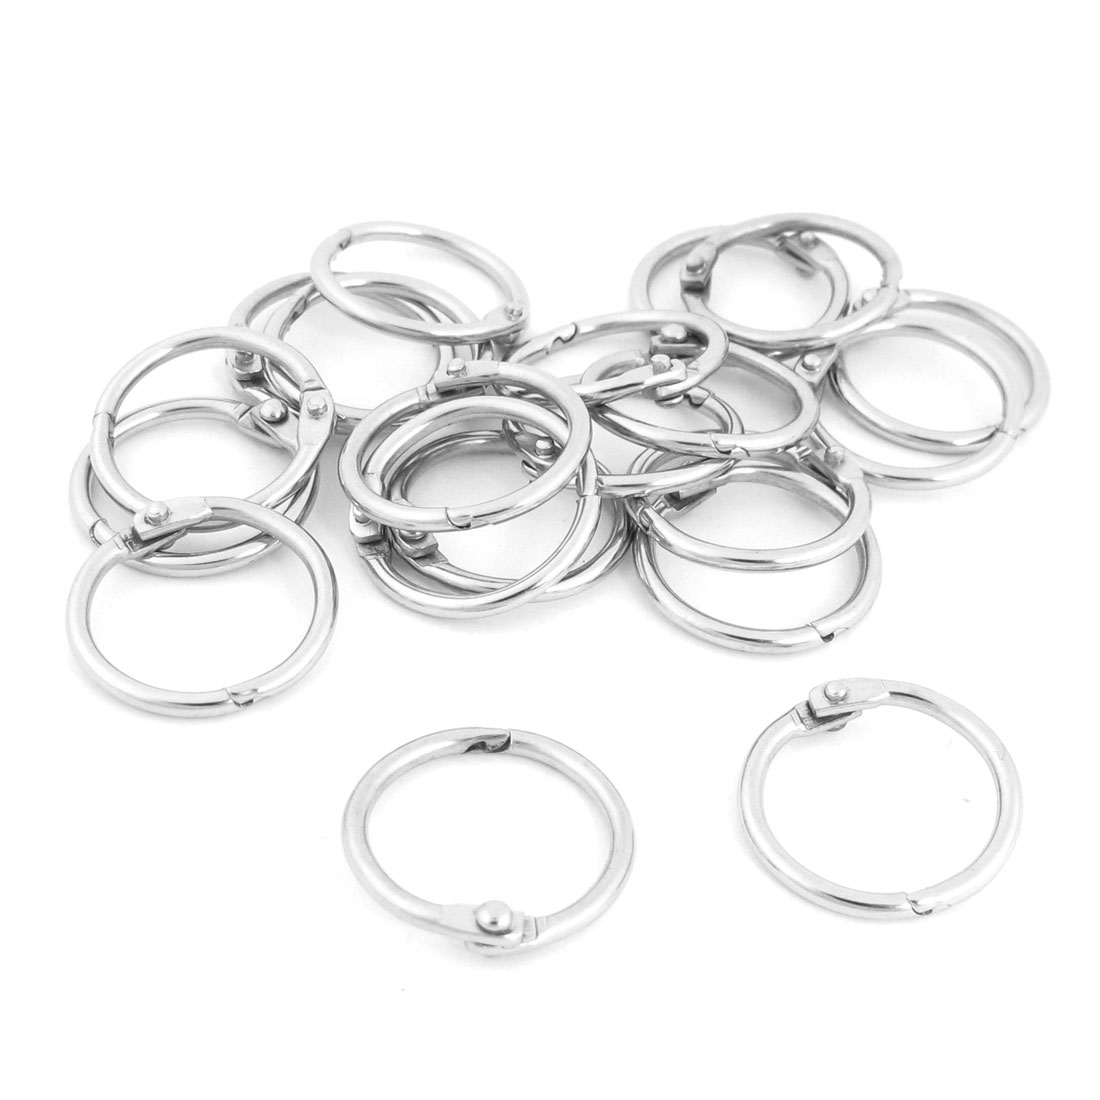 "20 Pcs 0.94"" OD Stationery Staple Book Binder Loose Leaf Snap Rings Keyring"